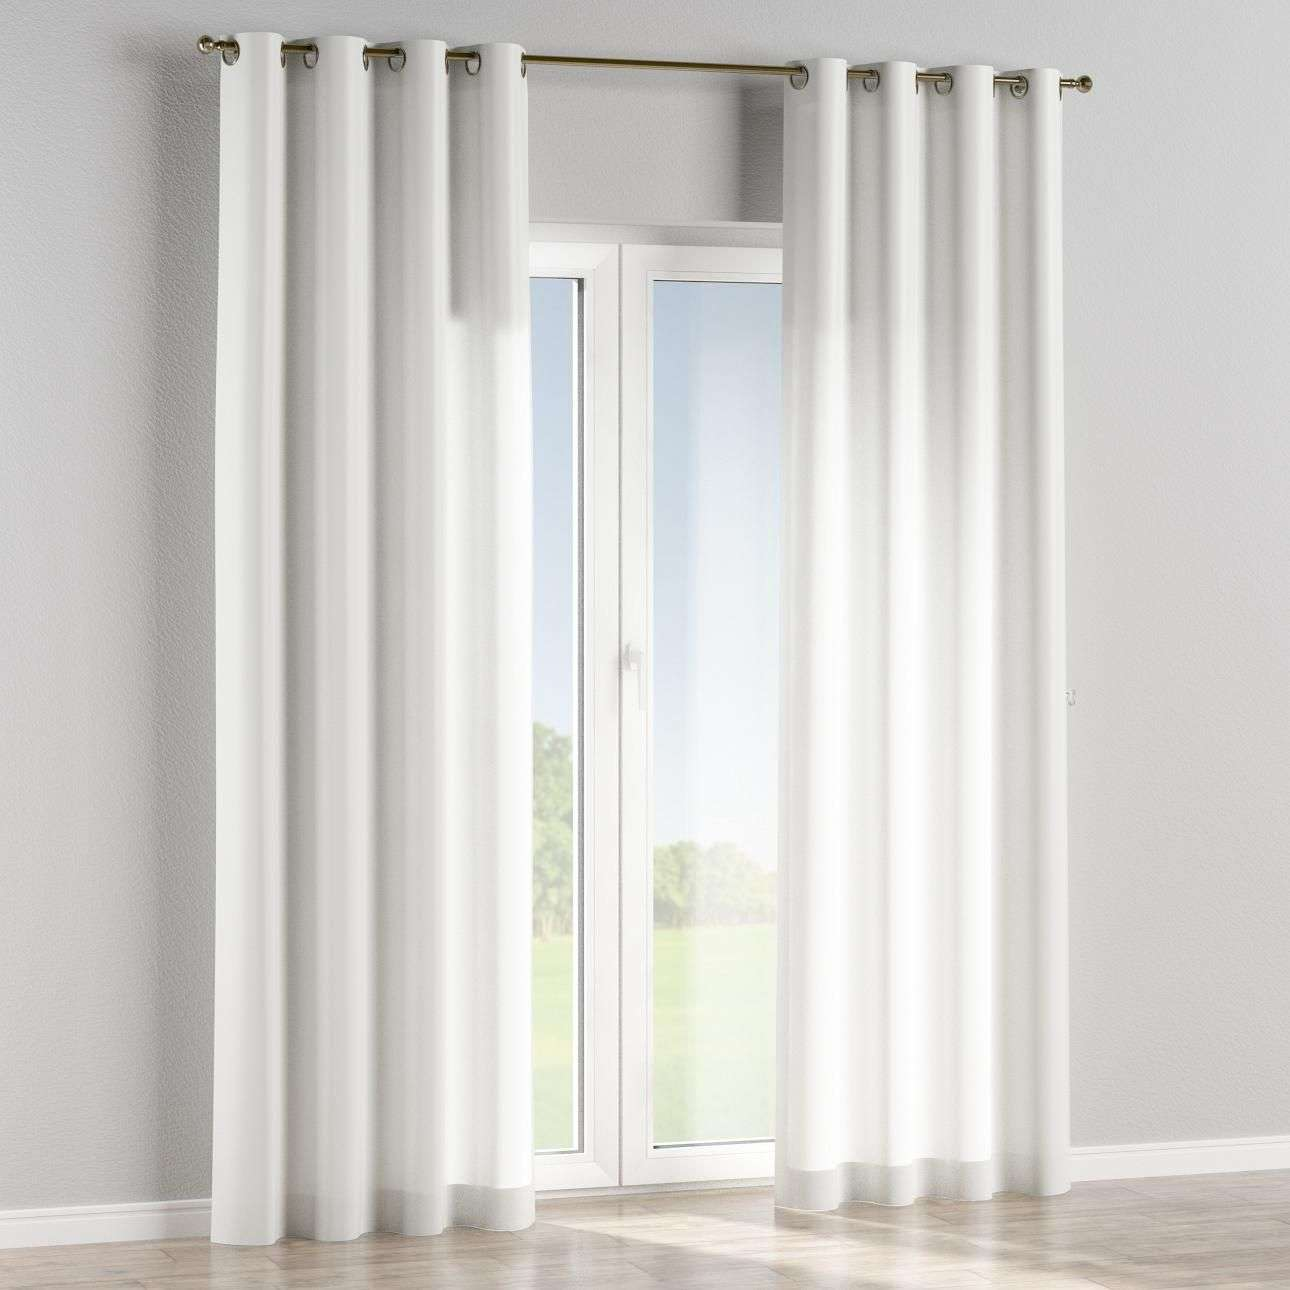 Eyelet curtains in collection SALE, fabric: 411-38